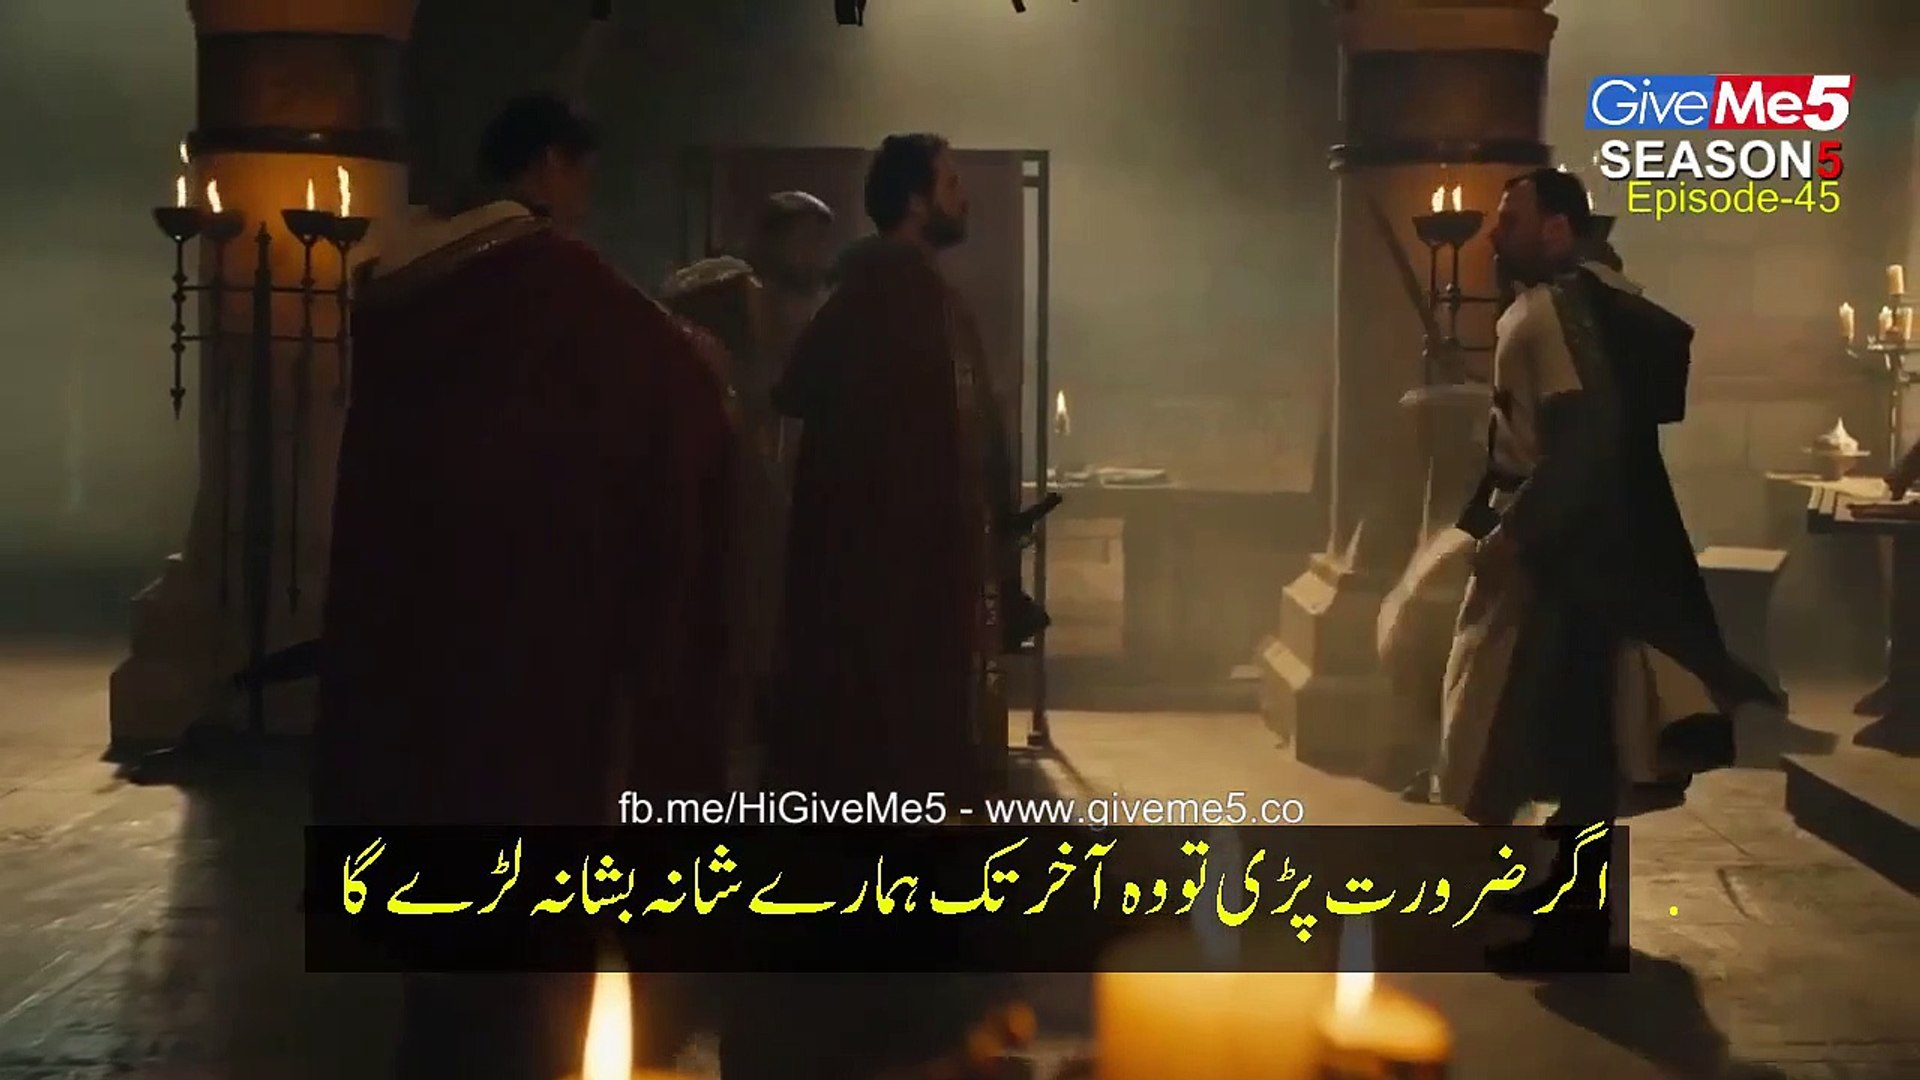 Dirilis Ertugrul Ghazi Season 5 in Urdu Subtitle Episode 45 & 46 (Part 1)